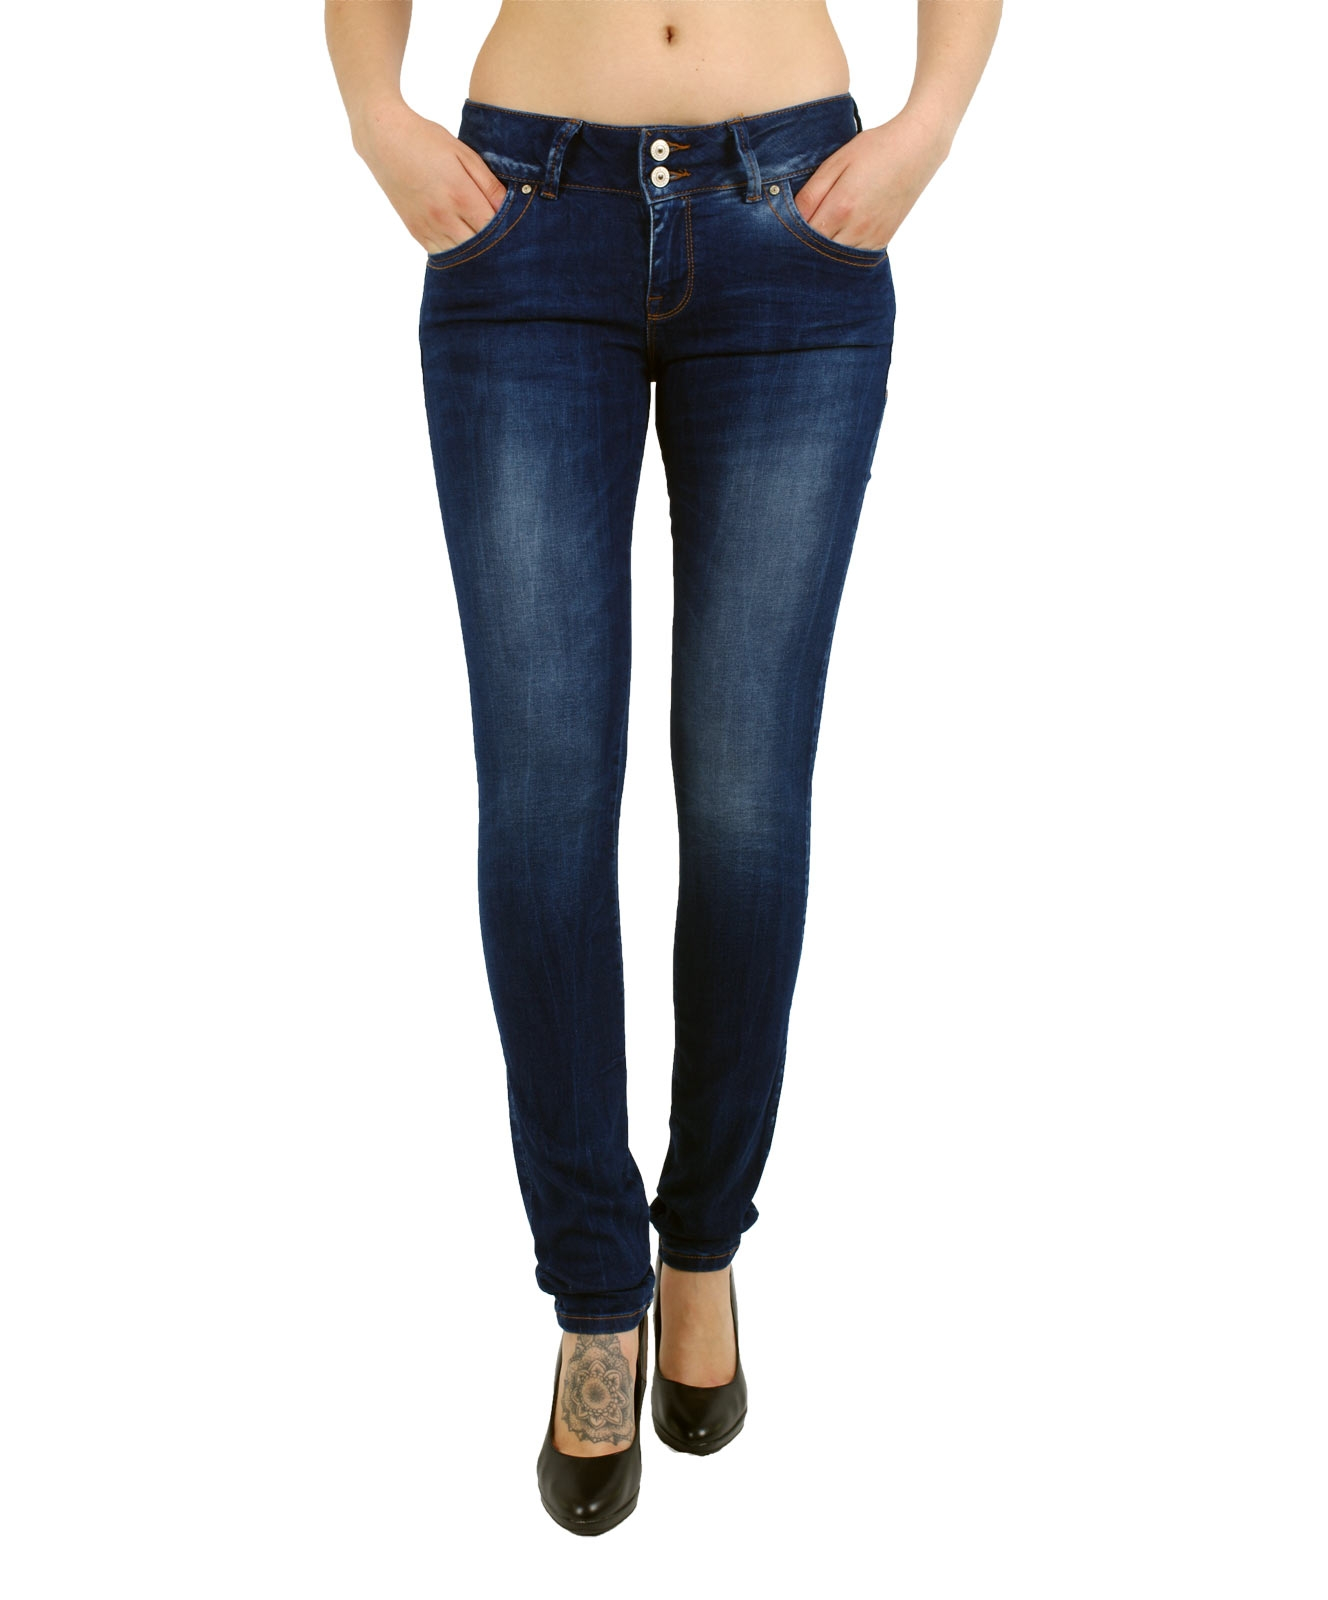 Hosen - LTB Slim Fit Jeans Molly in Heal Wash  - Onlineshop Jeans Meile